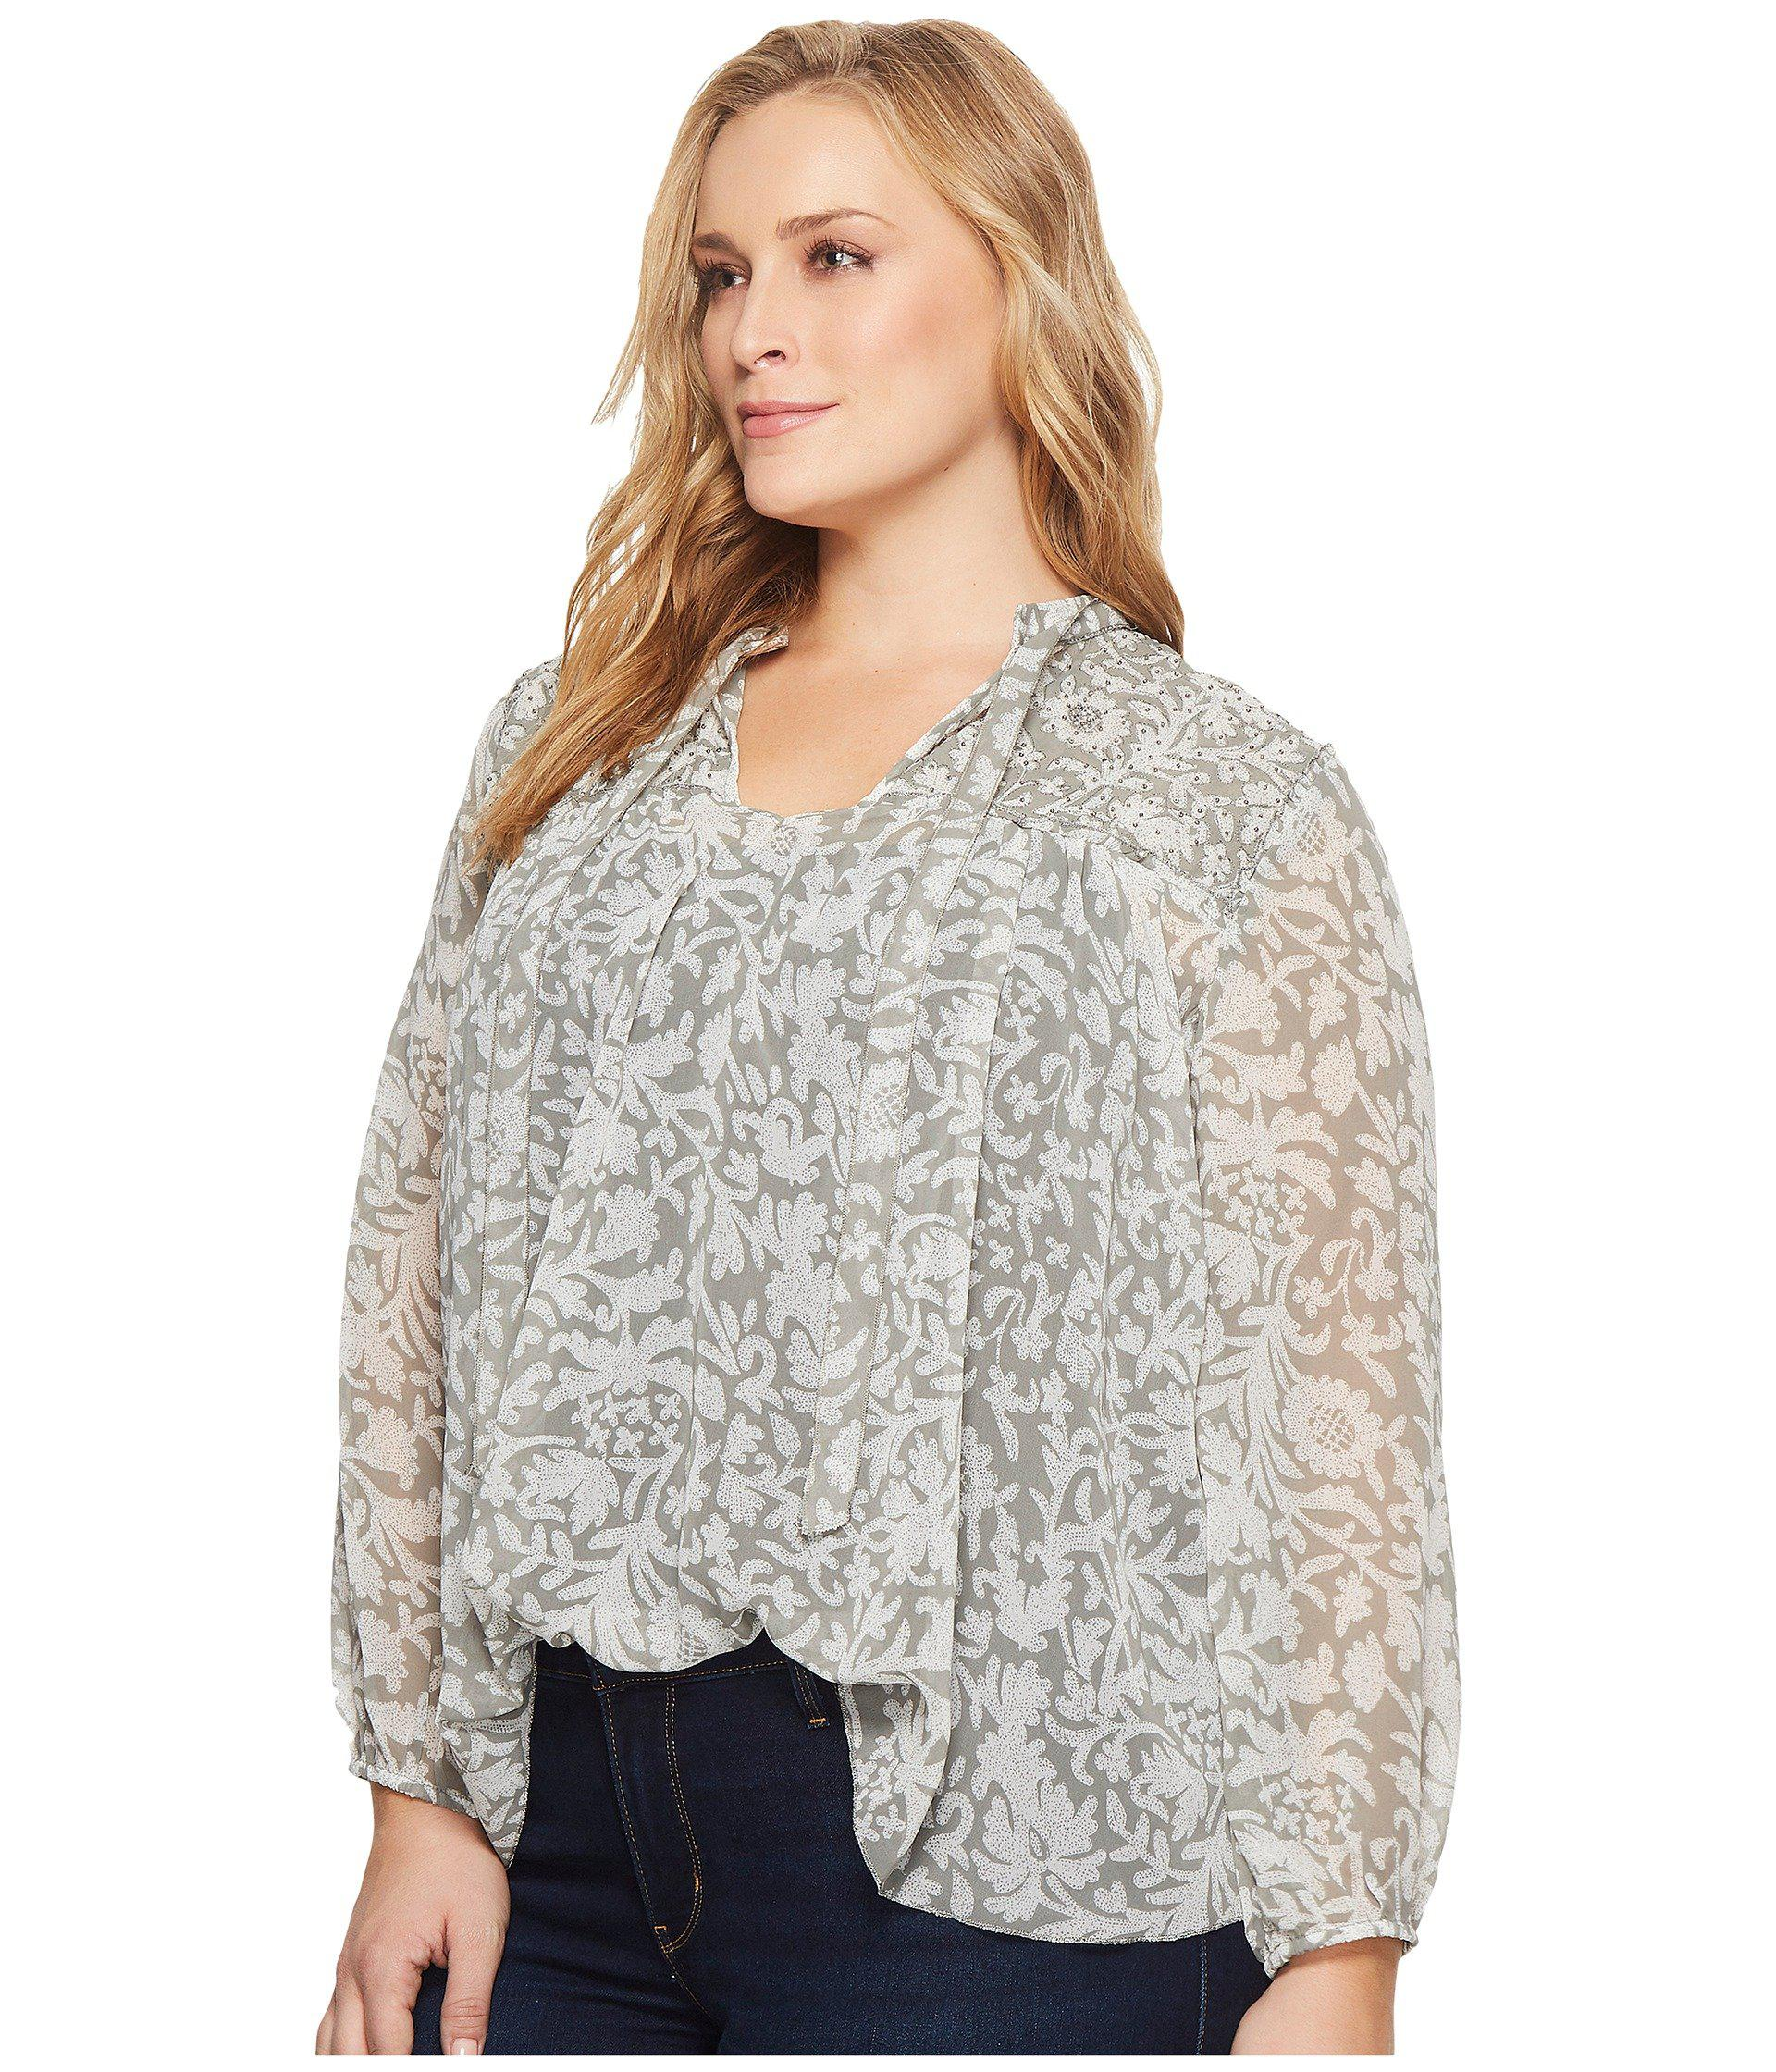 85cf333b3e9 Lyst - Lucky Brand Plus Size Beaded Floral Peasant Top in Gray - Save 47%